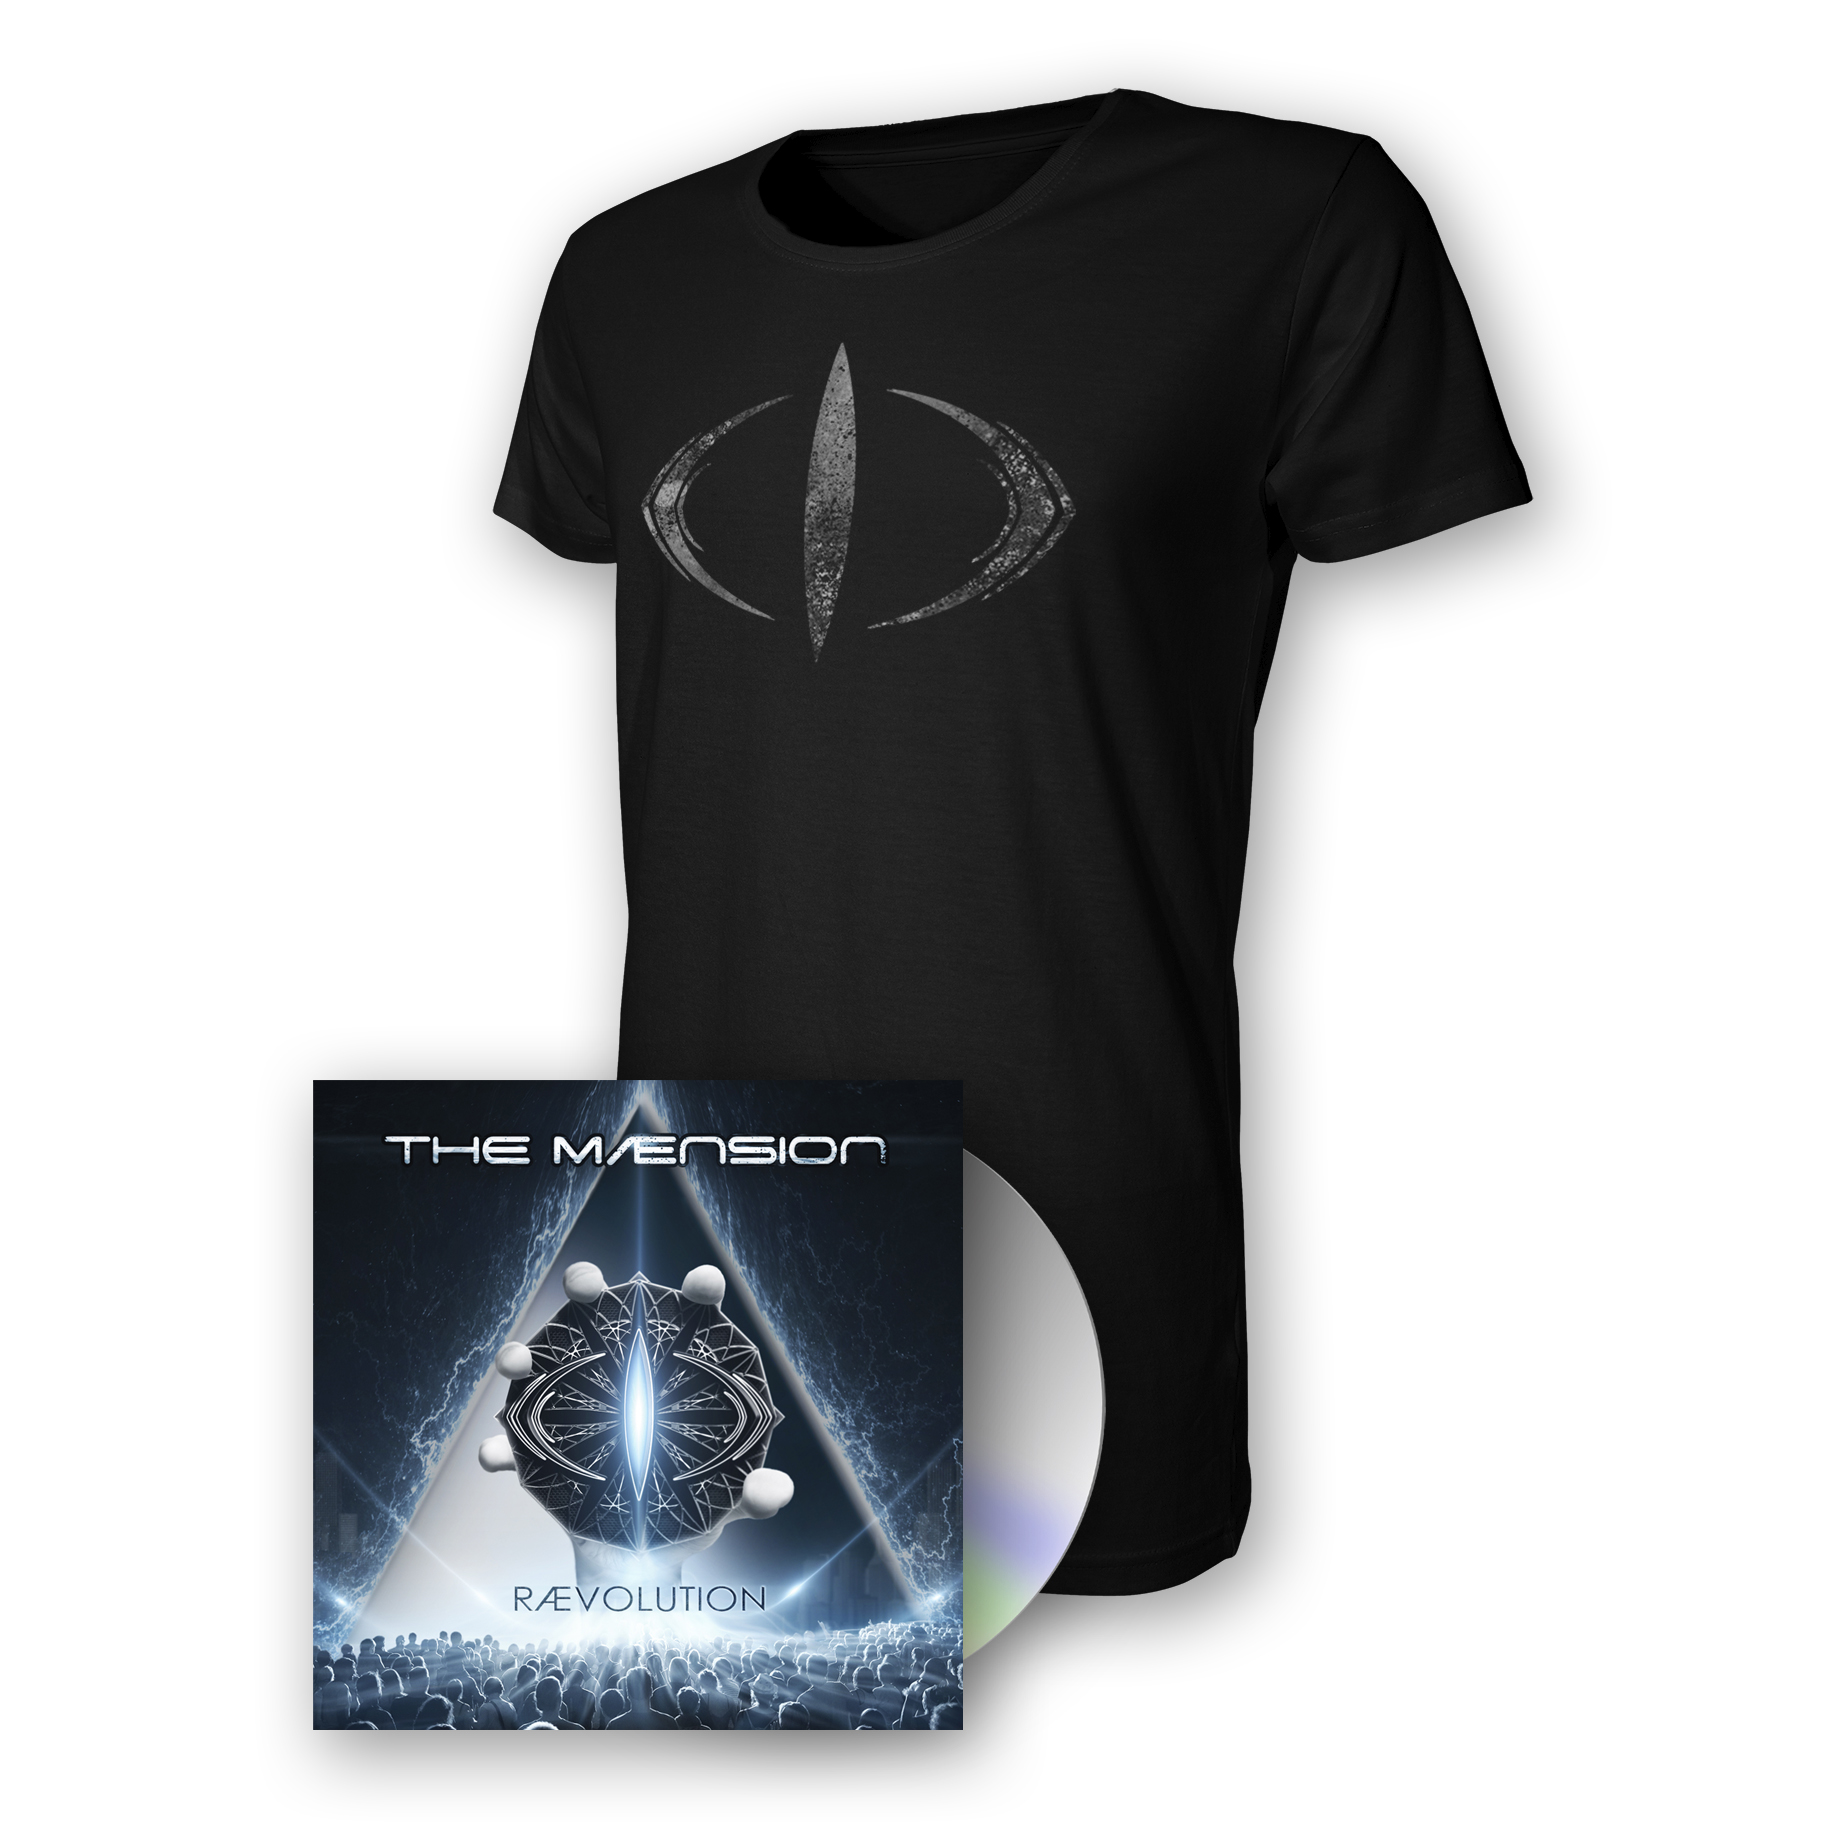 RÆVOLUTION CD & T-SHIRT BUNDLE + RIØT ACCESS PASS